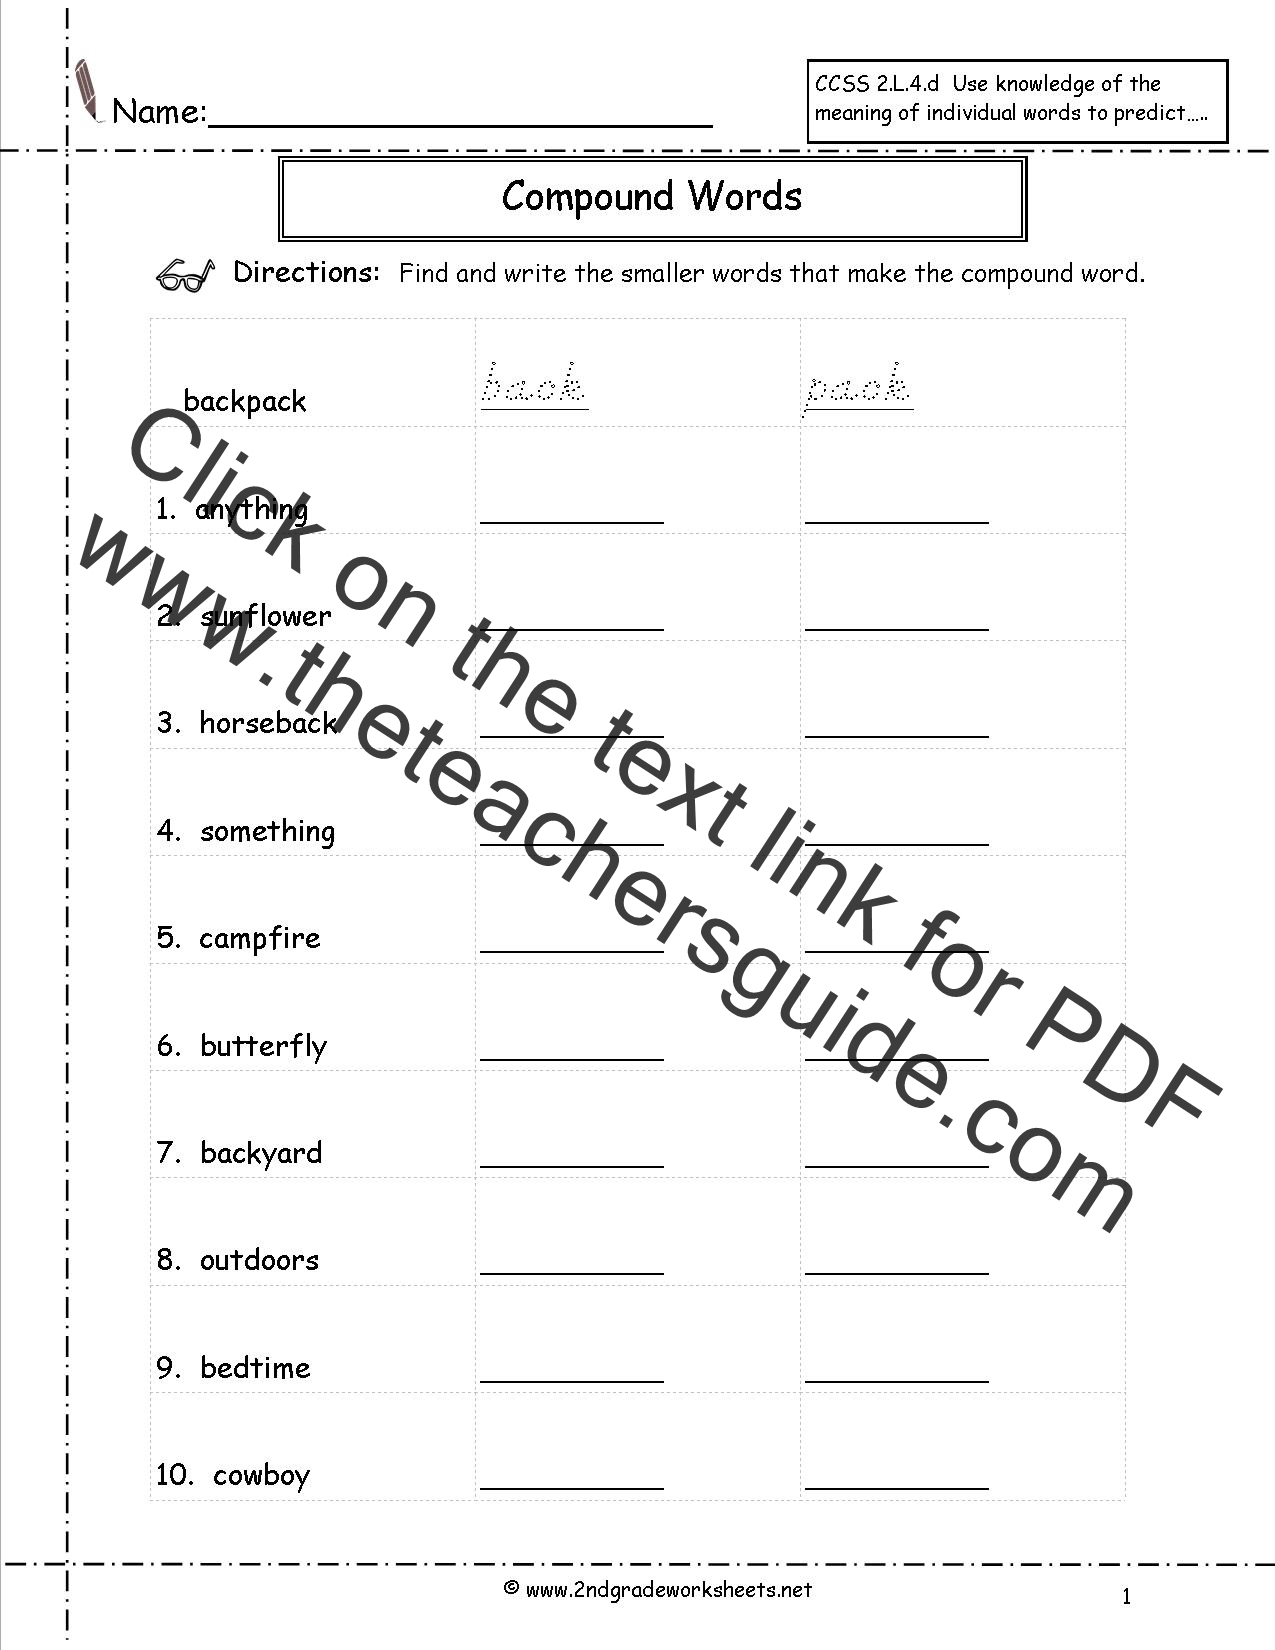 Printables Second Grade Grammar Worksheets free languagegrammar worksheets and printouts compound words worksheets